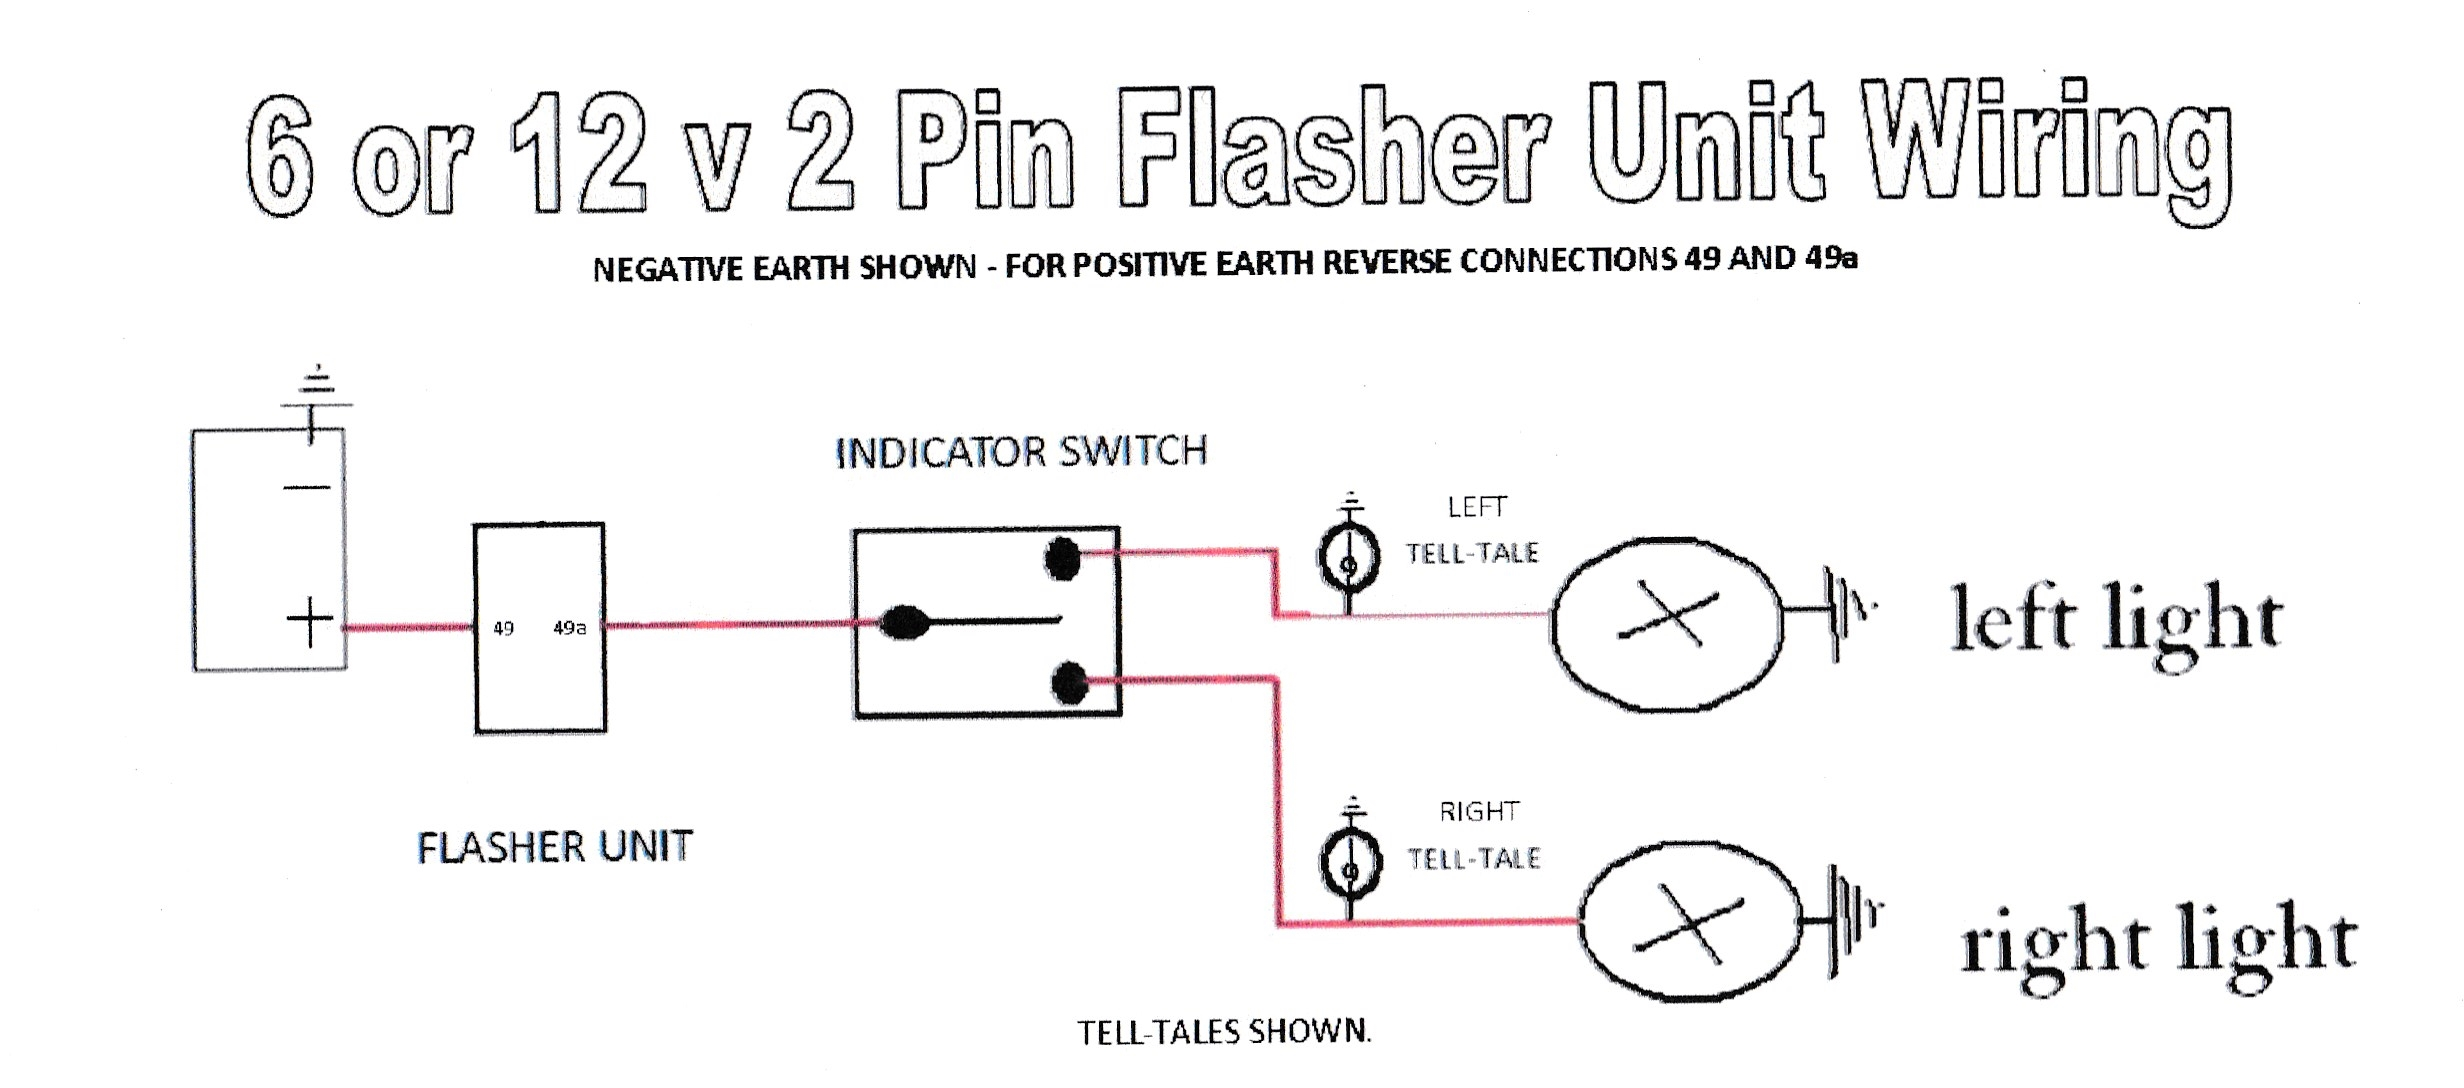 IMG_20150323_0001_NEW wiring diagrams to assist you with connecting up wiring diagram for 3 pin flasher unit at webbmarketing.co